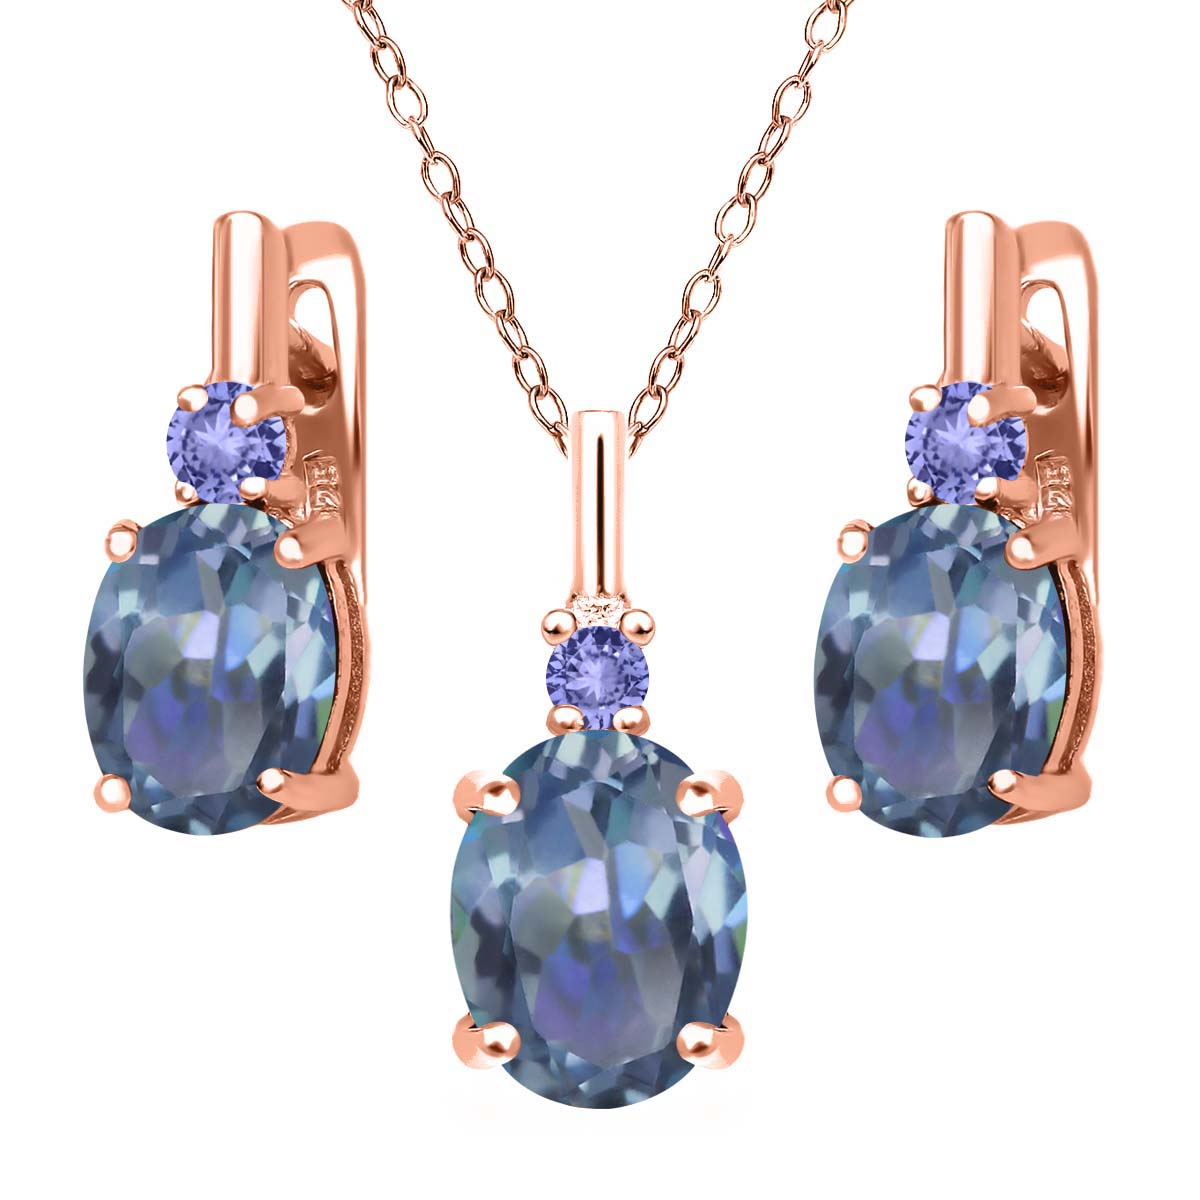 6.98 Ct Cassiopeia Mystic Topaz Blue Tanzanite 18K Rose Gold Plated Silver Pendant Earrings Set by